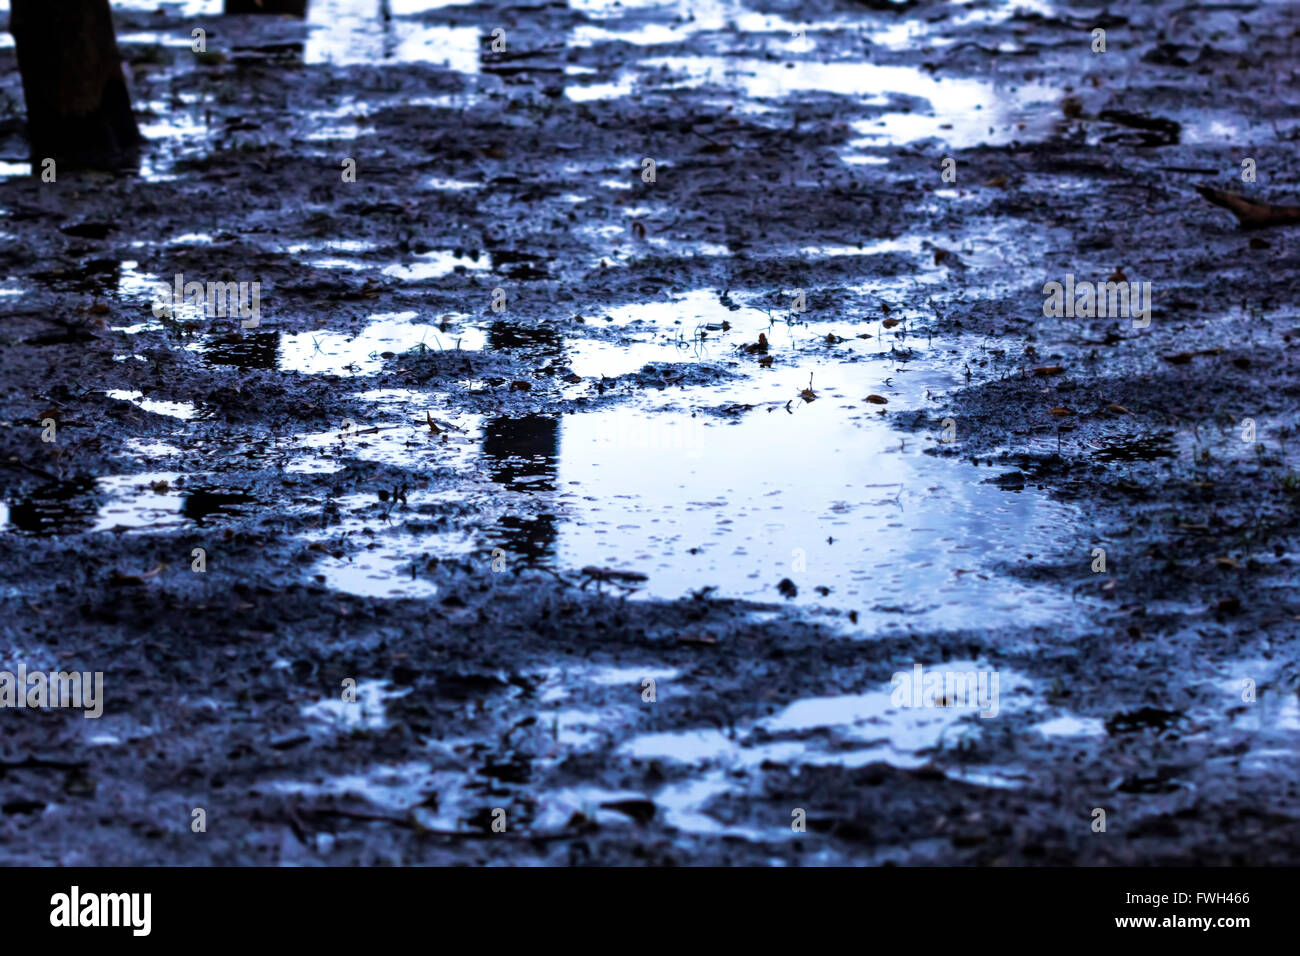 Slush and mud on road at cloudy evening - Stock Image